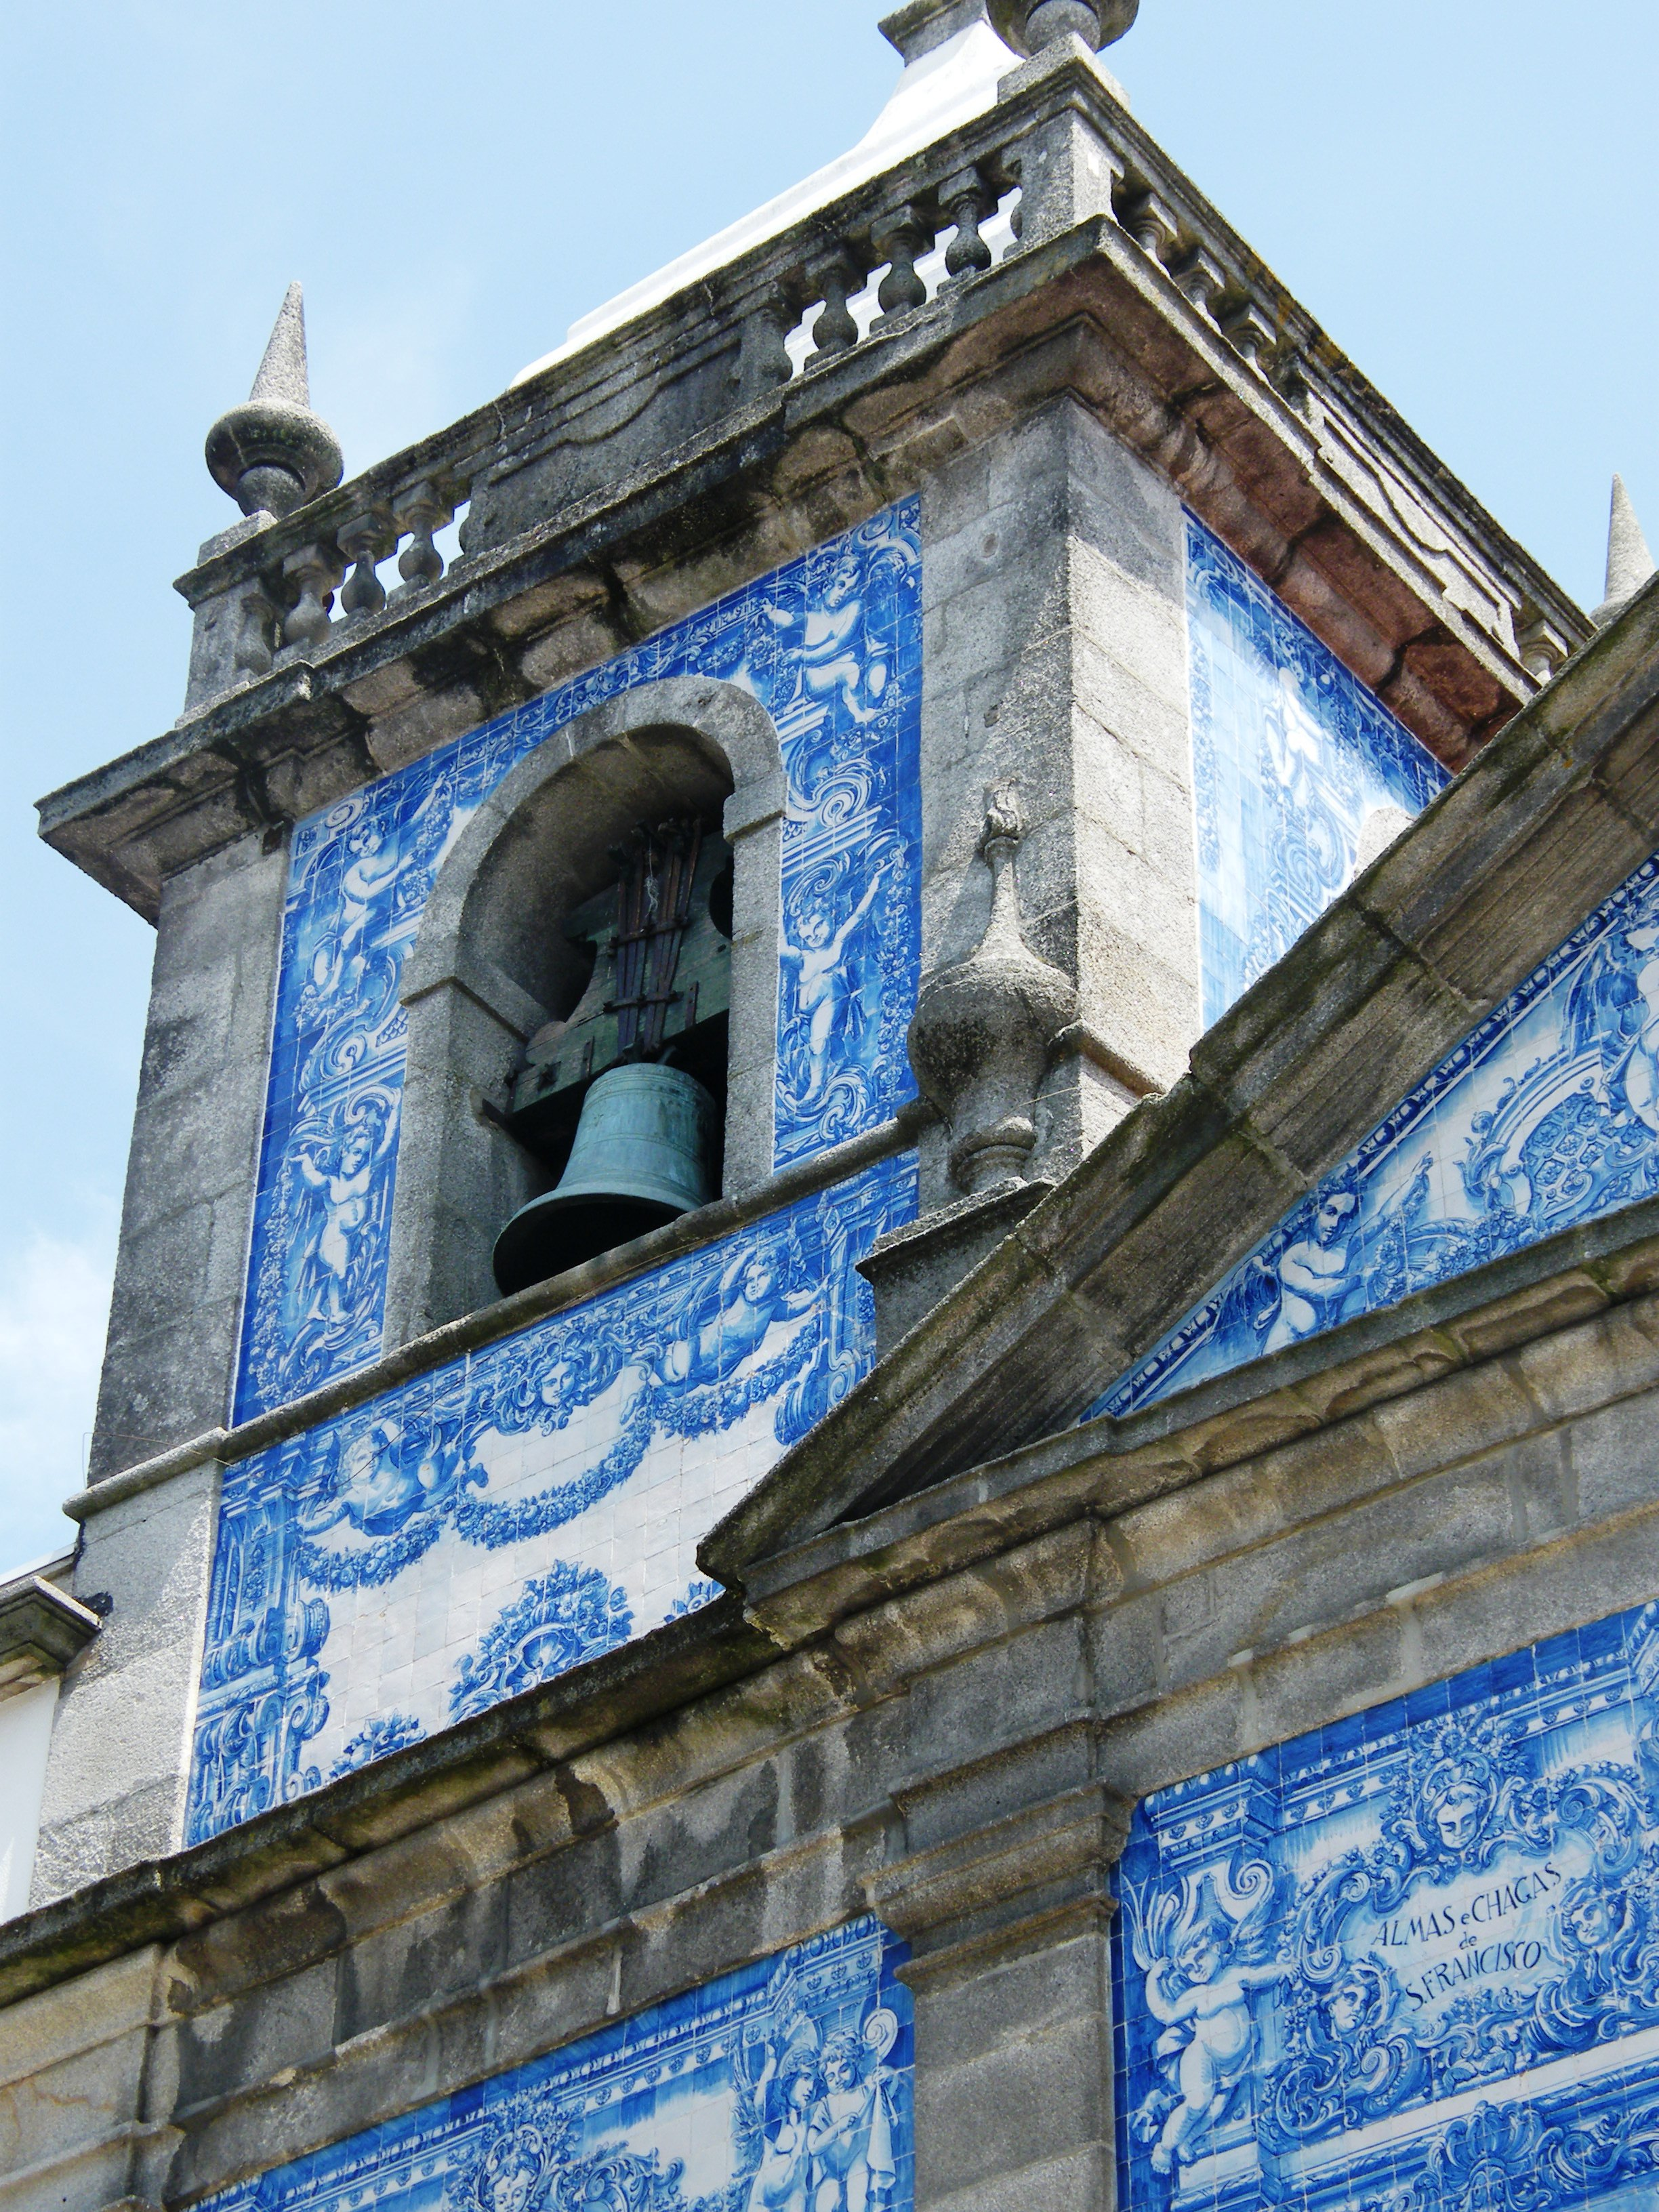 Tiled tower of the Chapel of Santa Catarina  in Porto